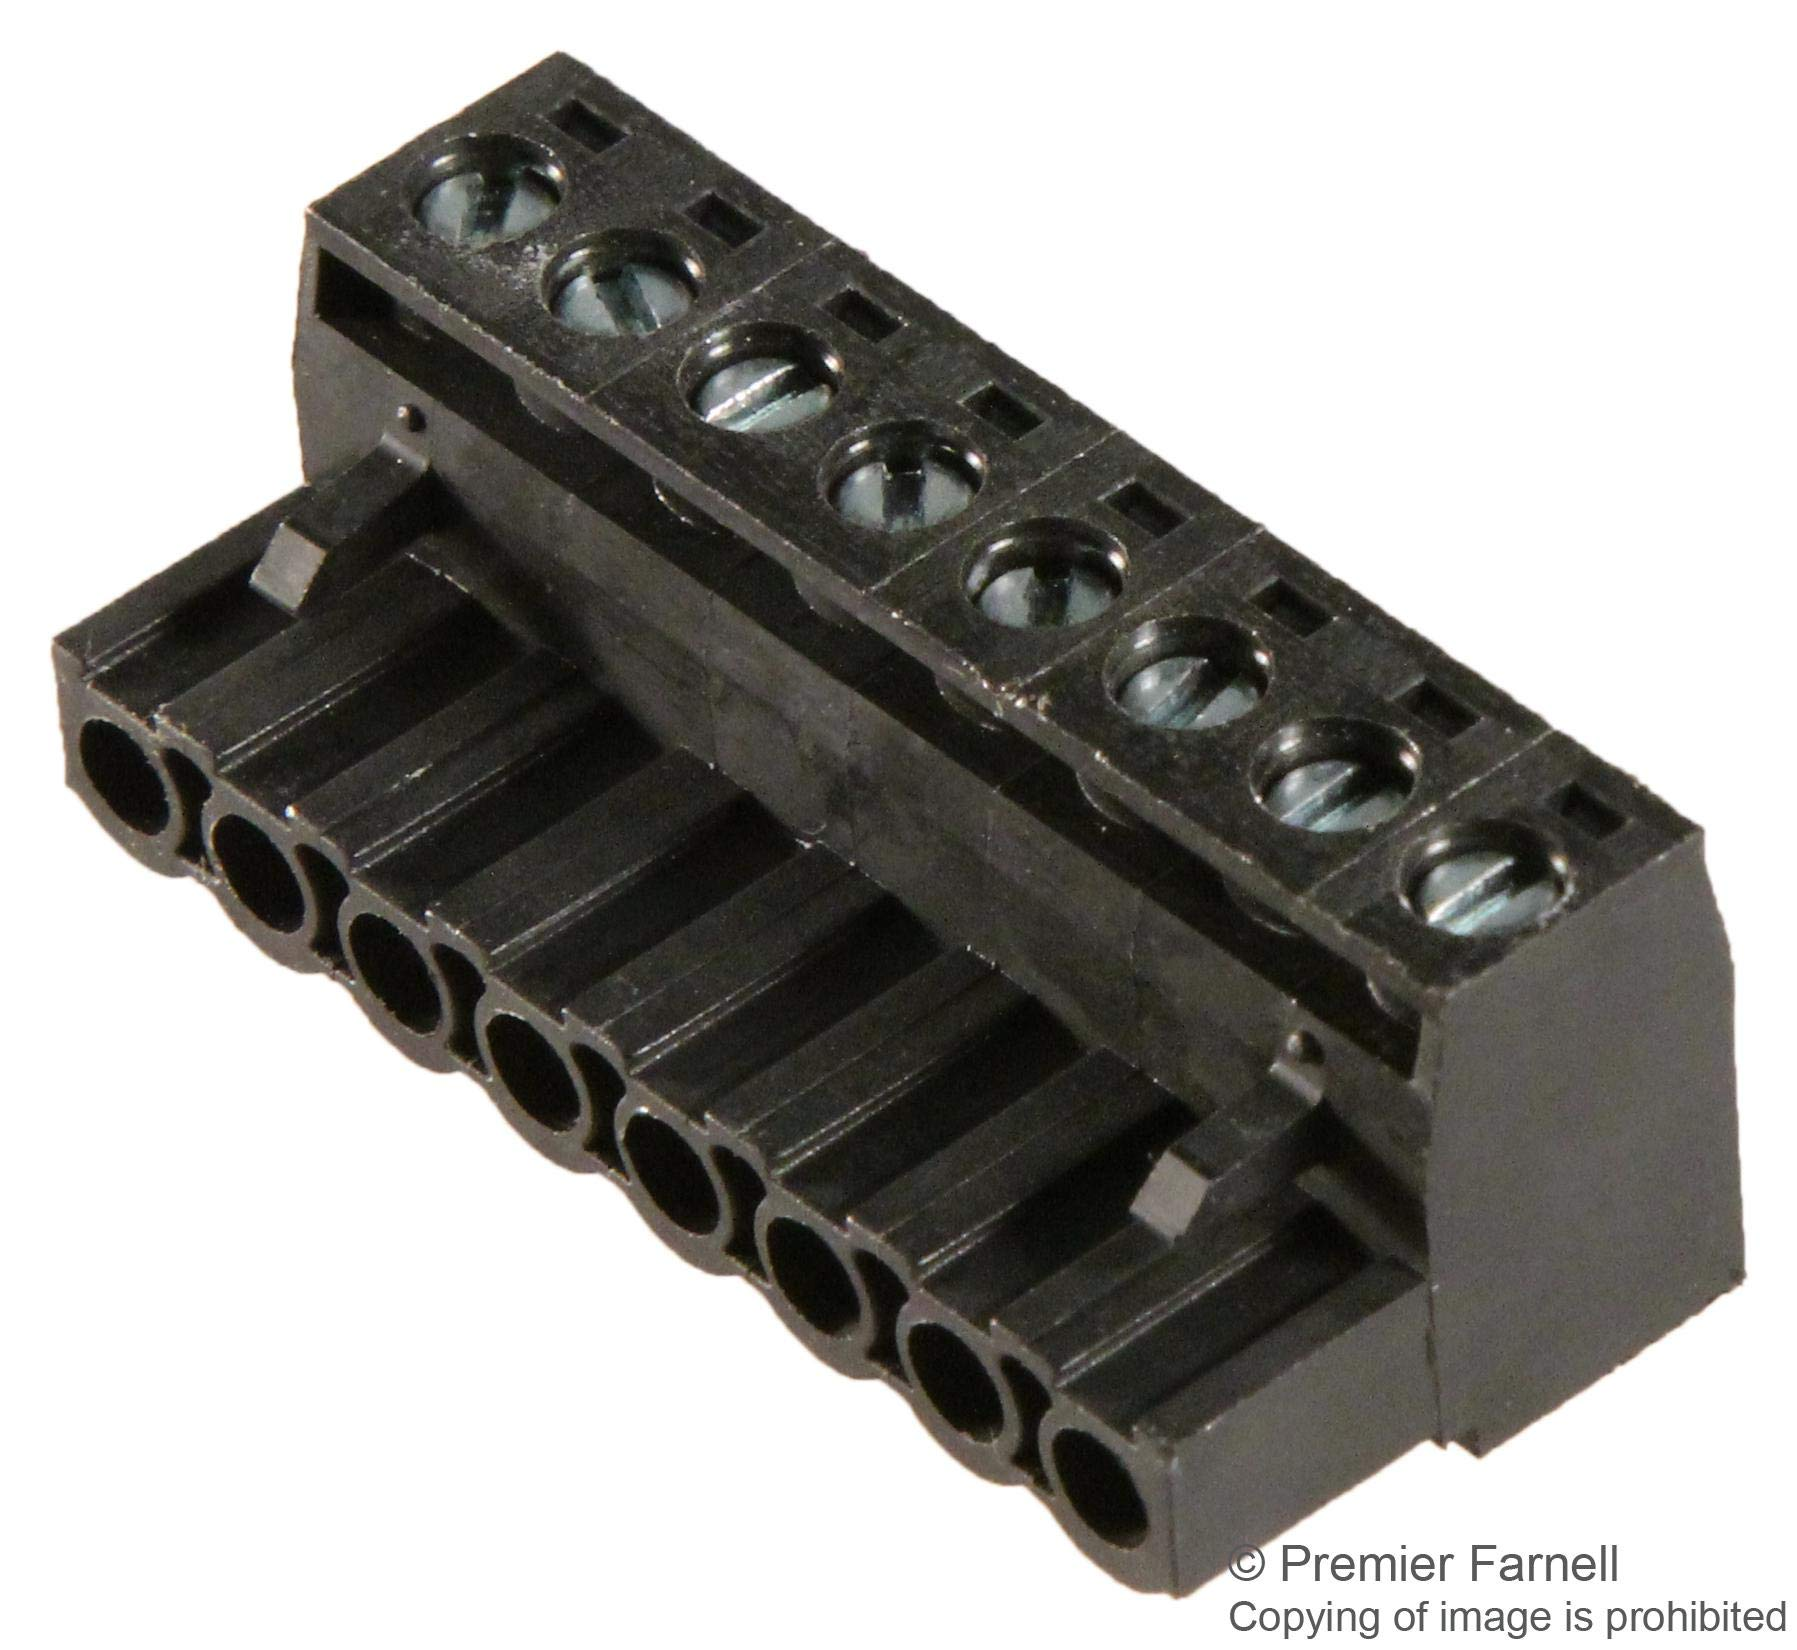 39530-0008 - Pluggable Terminal Block, Eurostyle, 5.08 mm, 8 Positions, 26 AWG, 12 AWG, 3.31 mm², Screw, (Pack of 10)